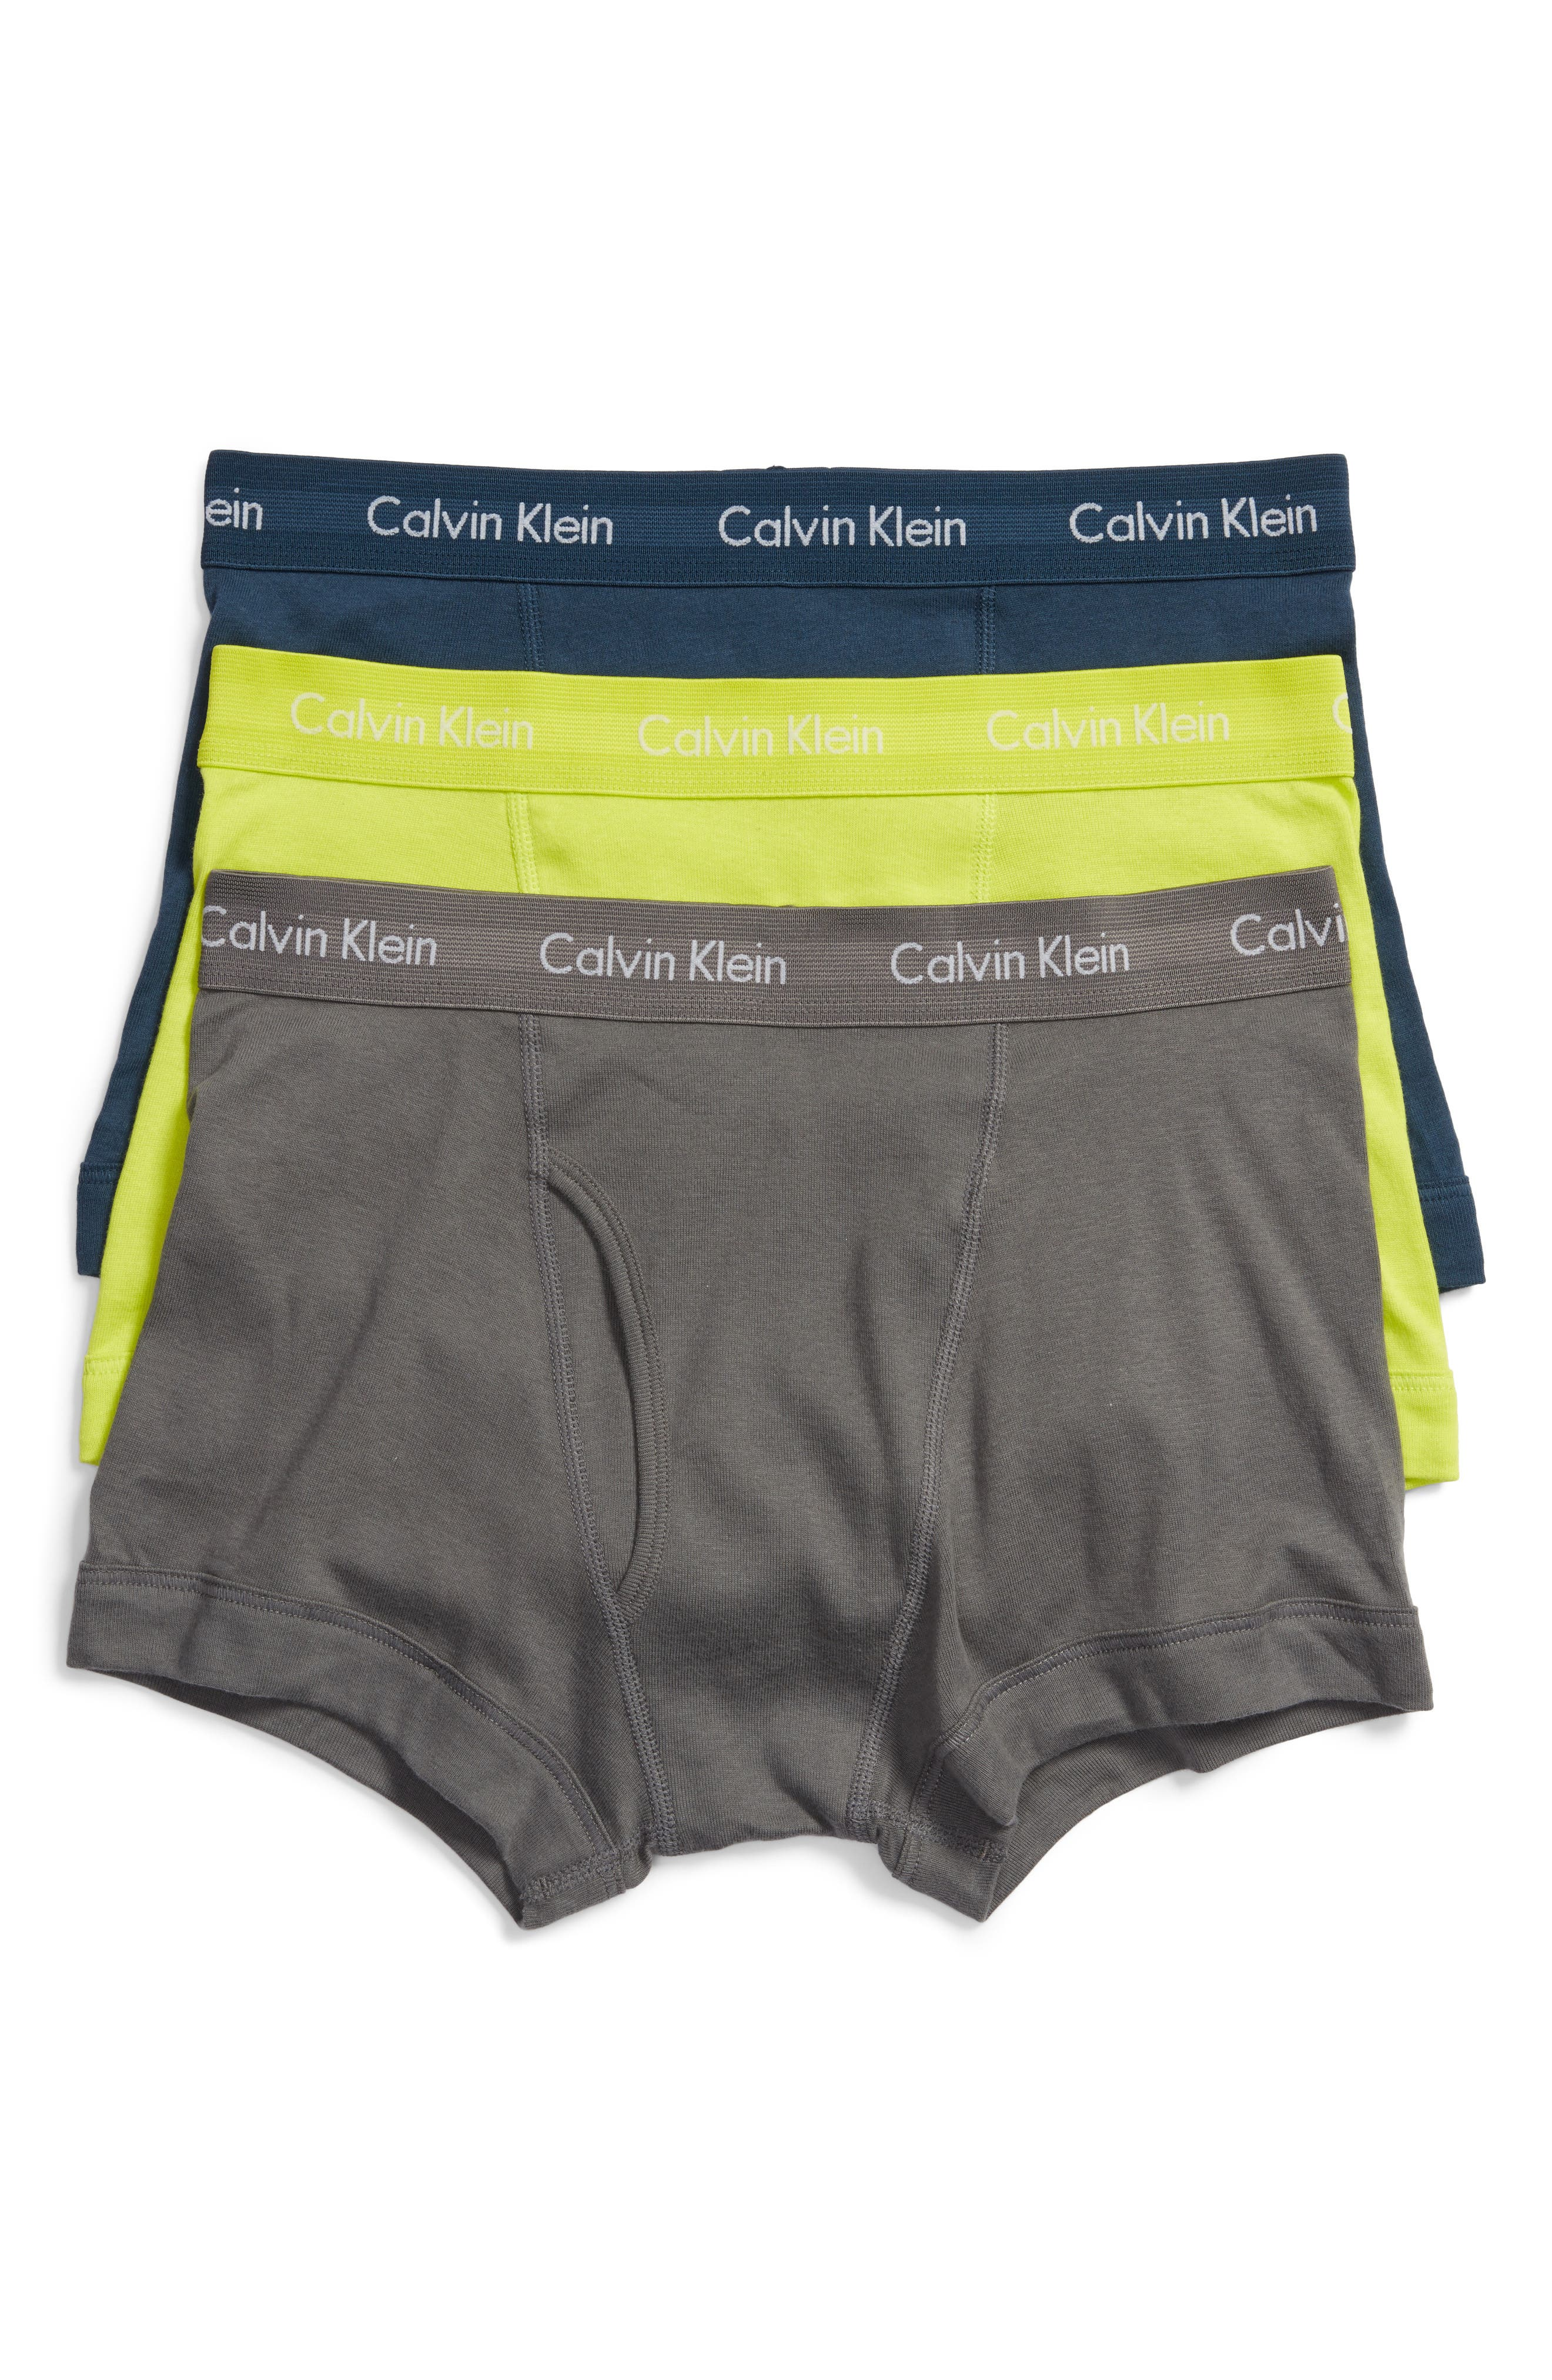 Calvin Klein Cotton Trunks (3-Pack)